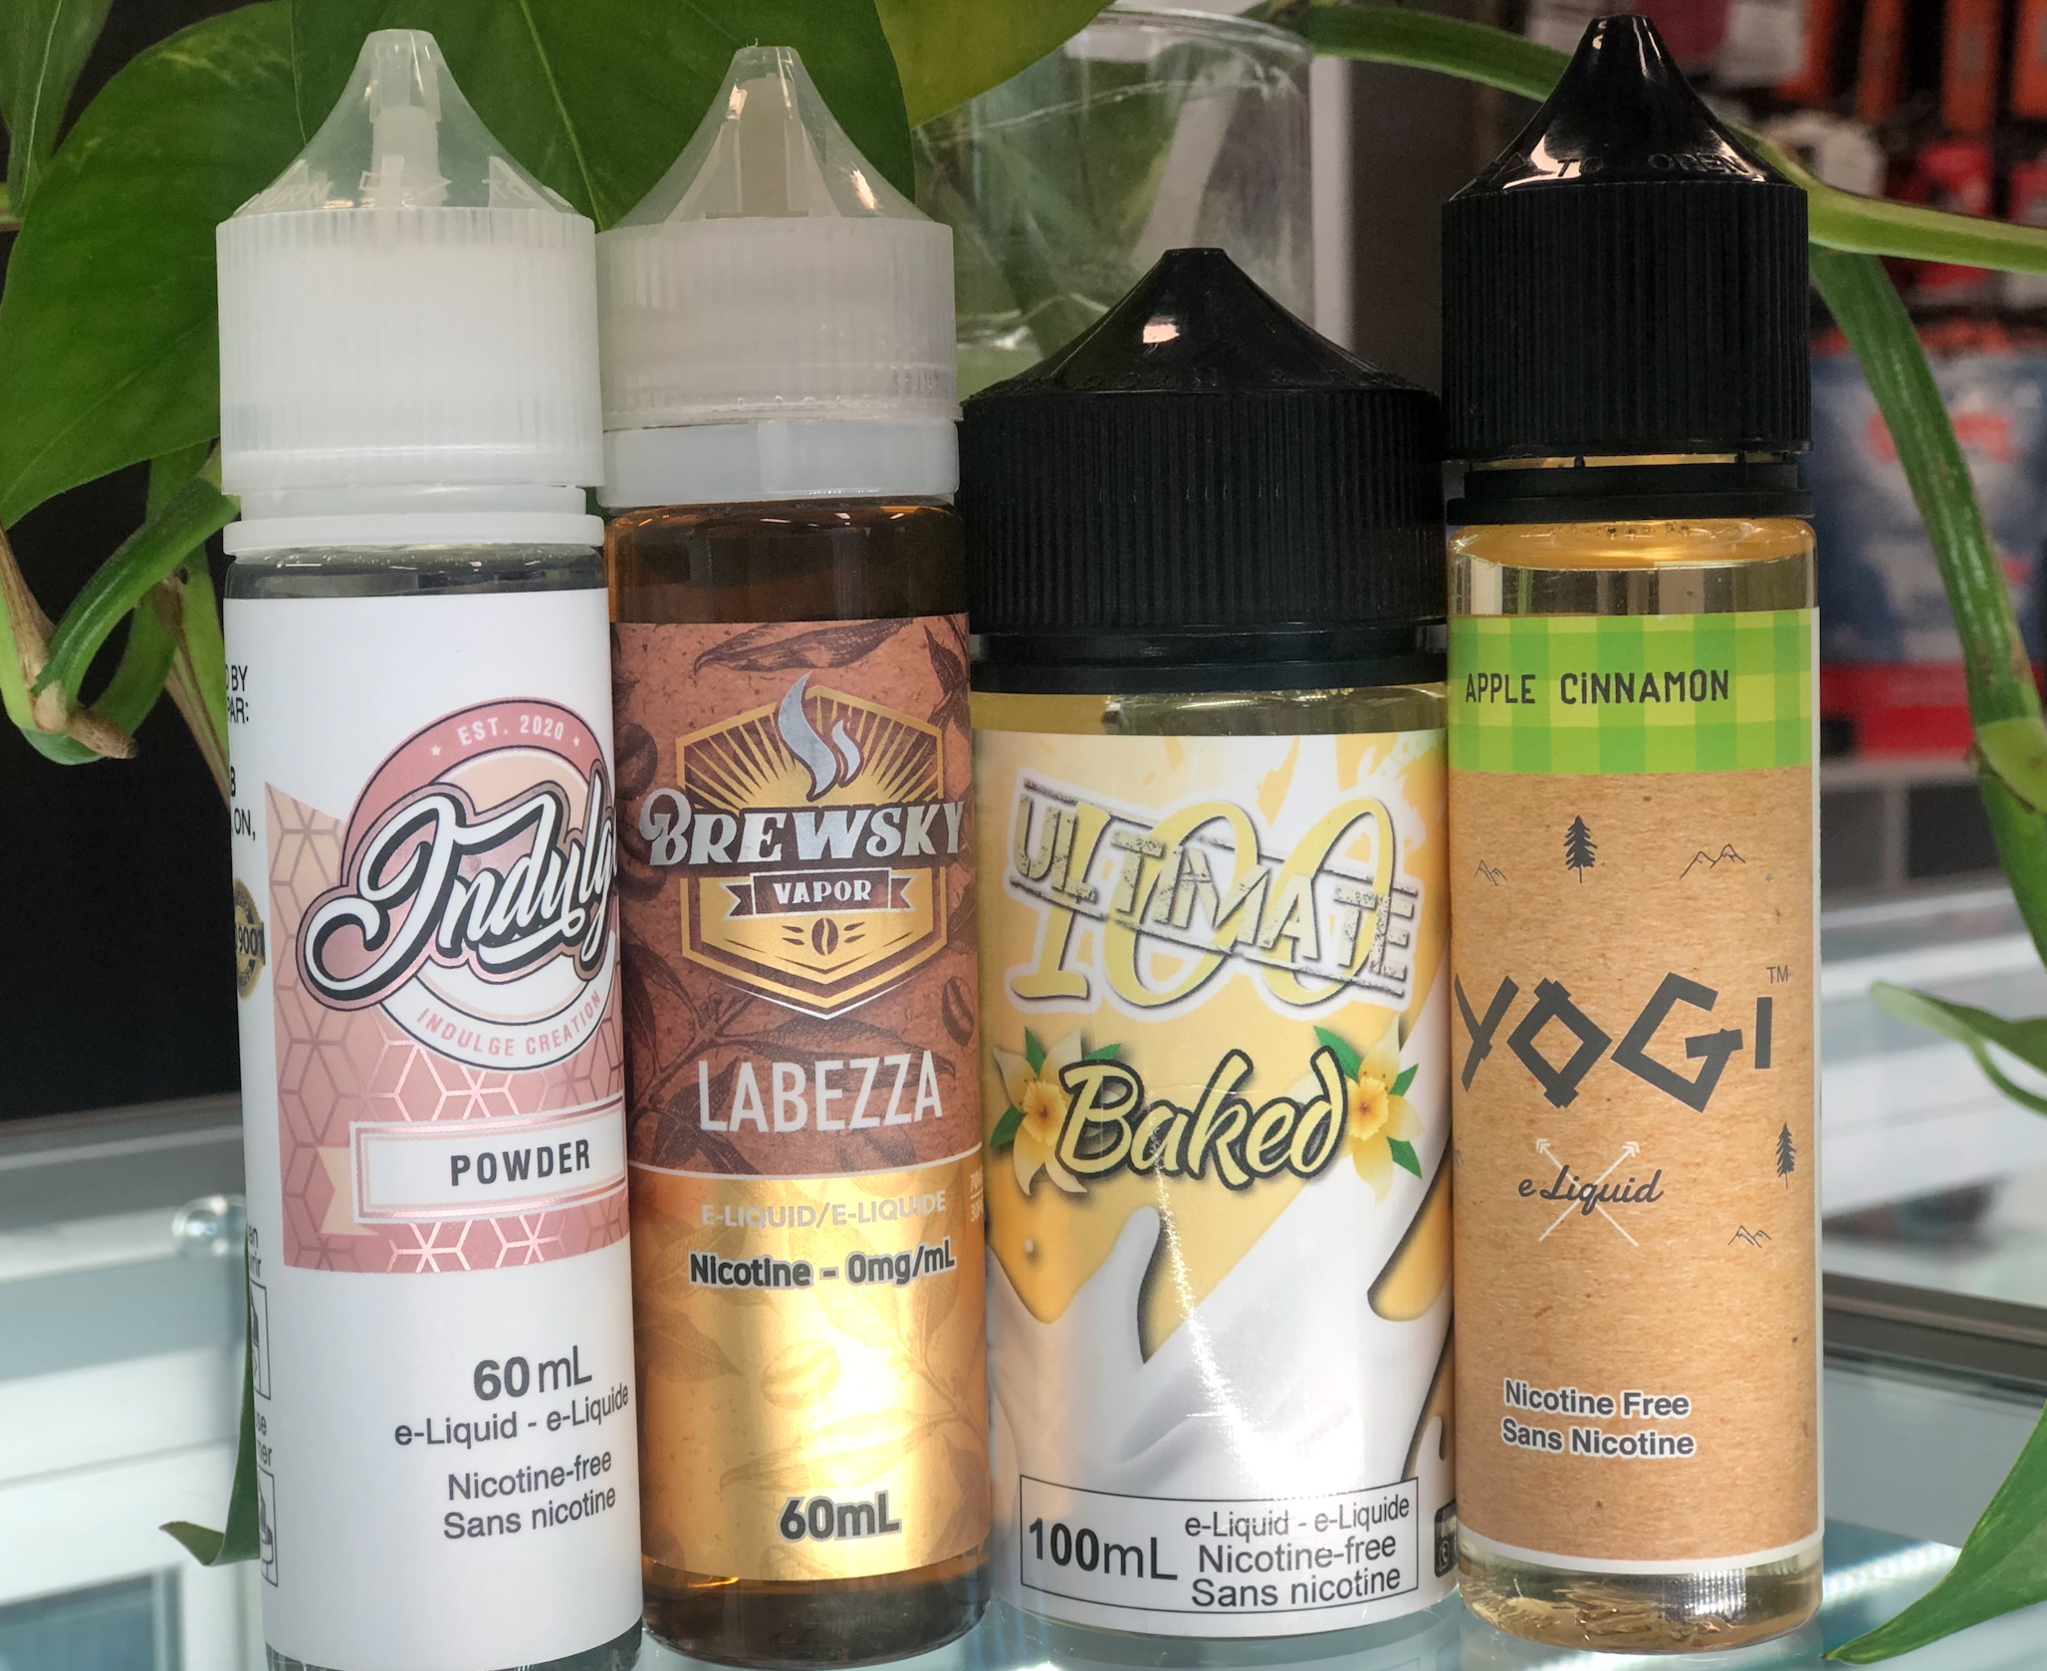 WINTER is approaching! Few of our E-juice picks for you all in this cold weather!